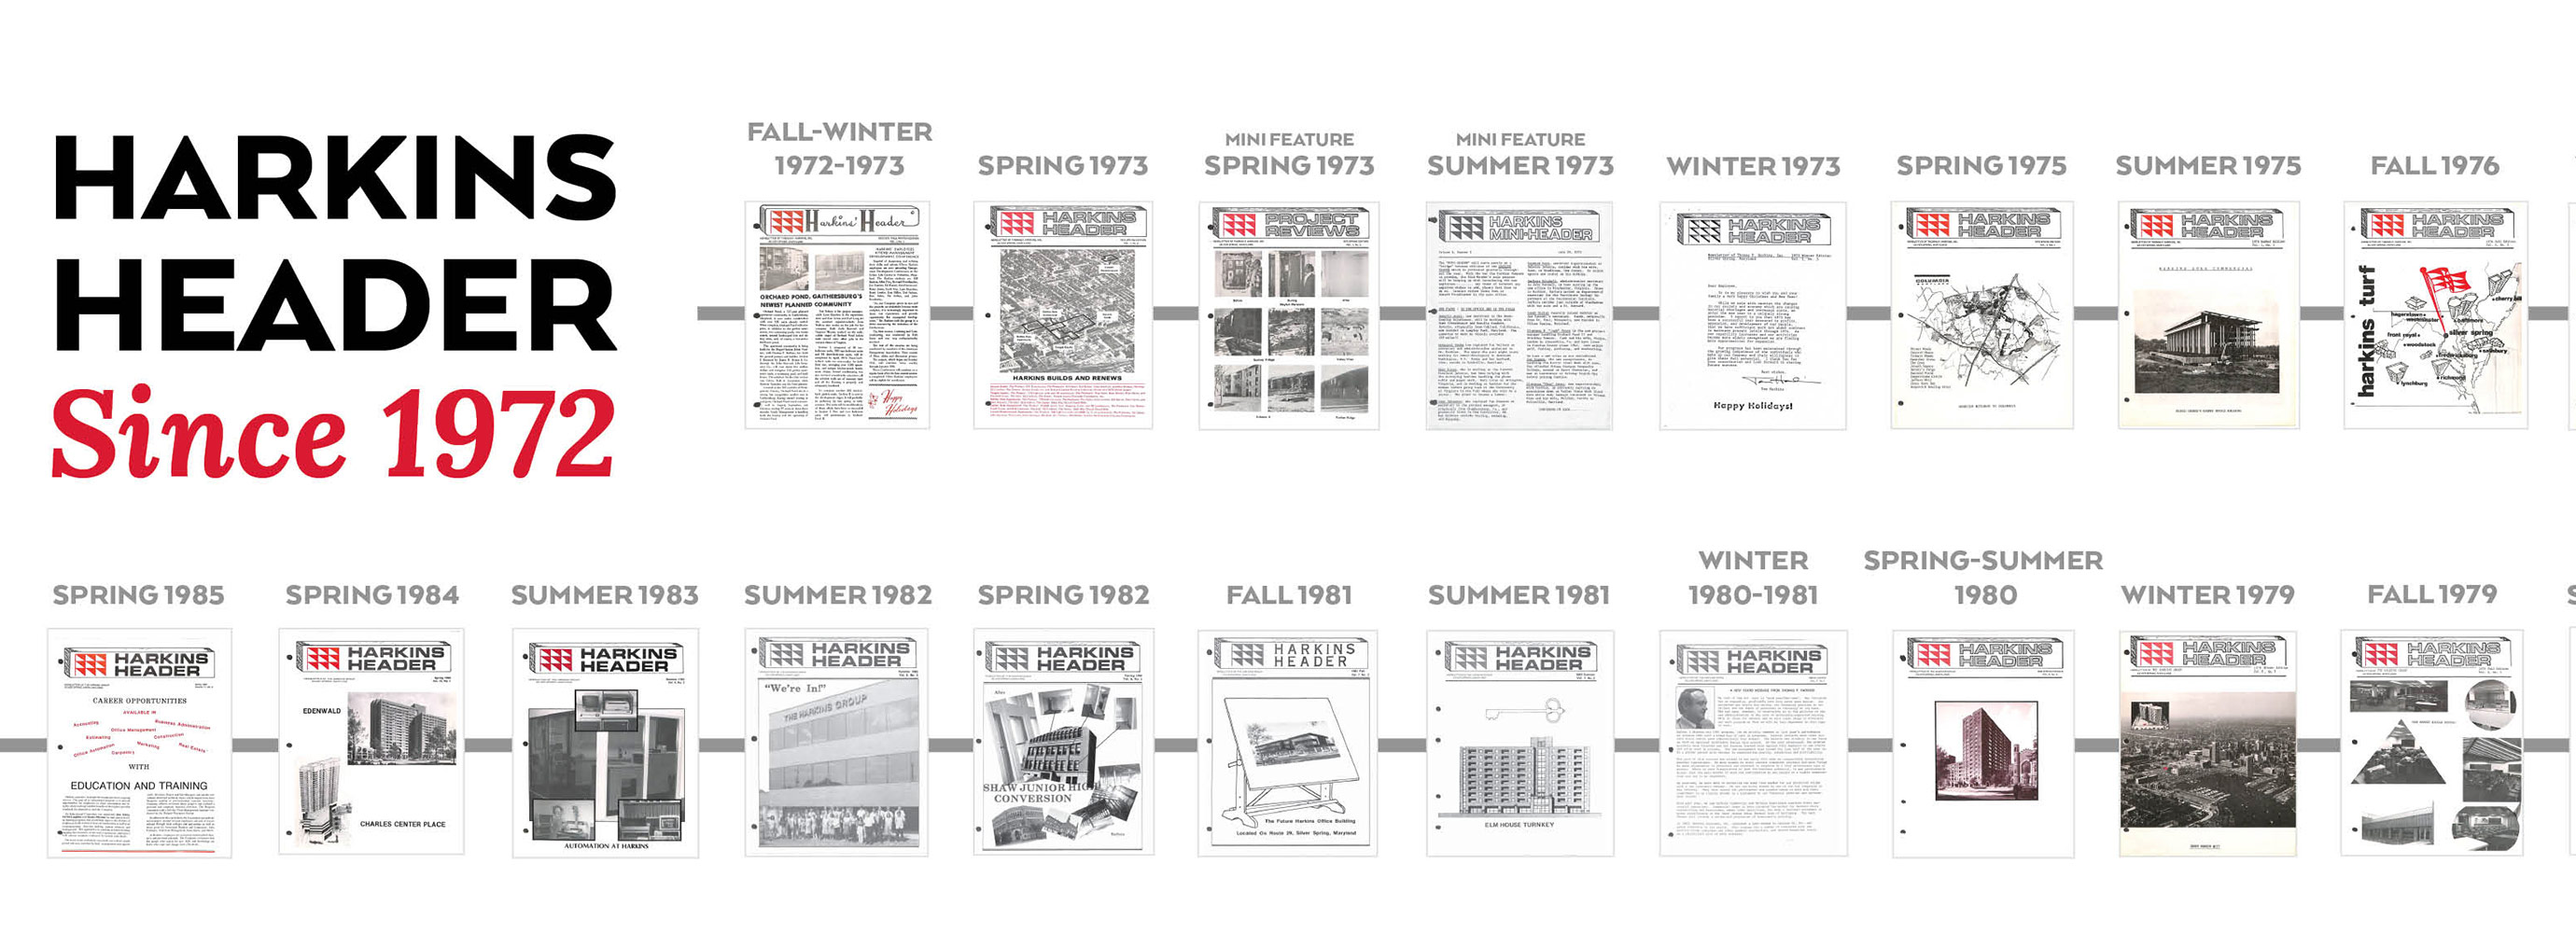 Harkins Header newsletter timeline since 1972